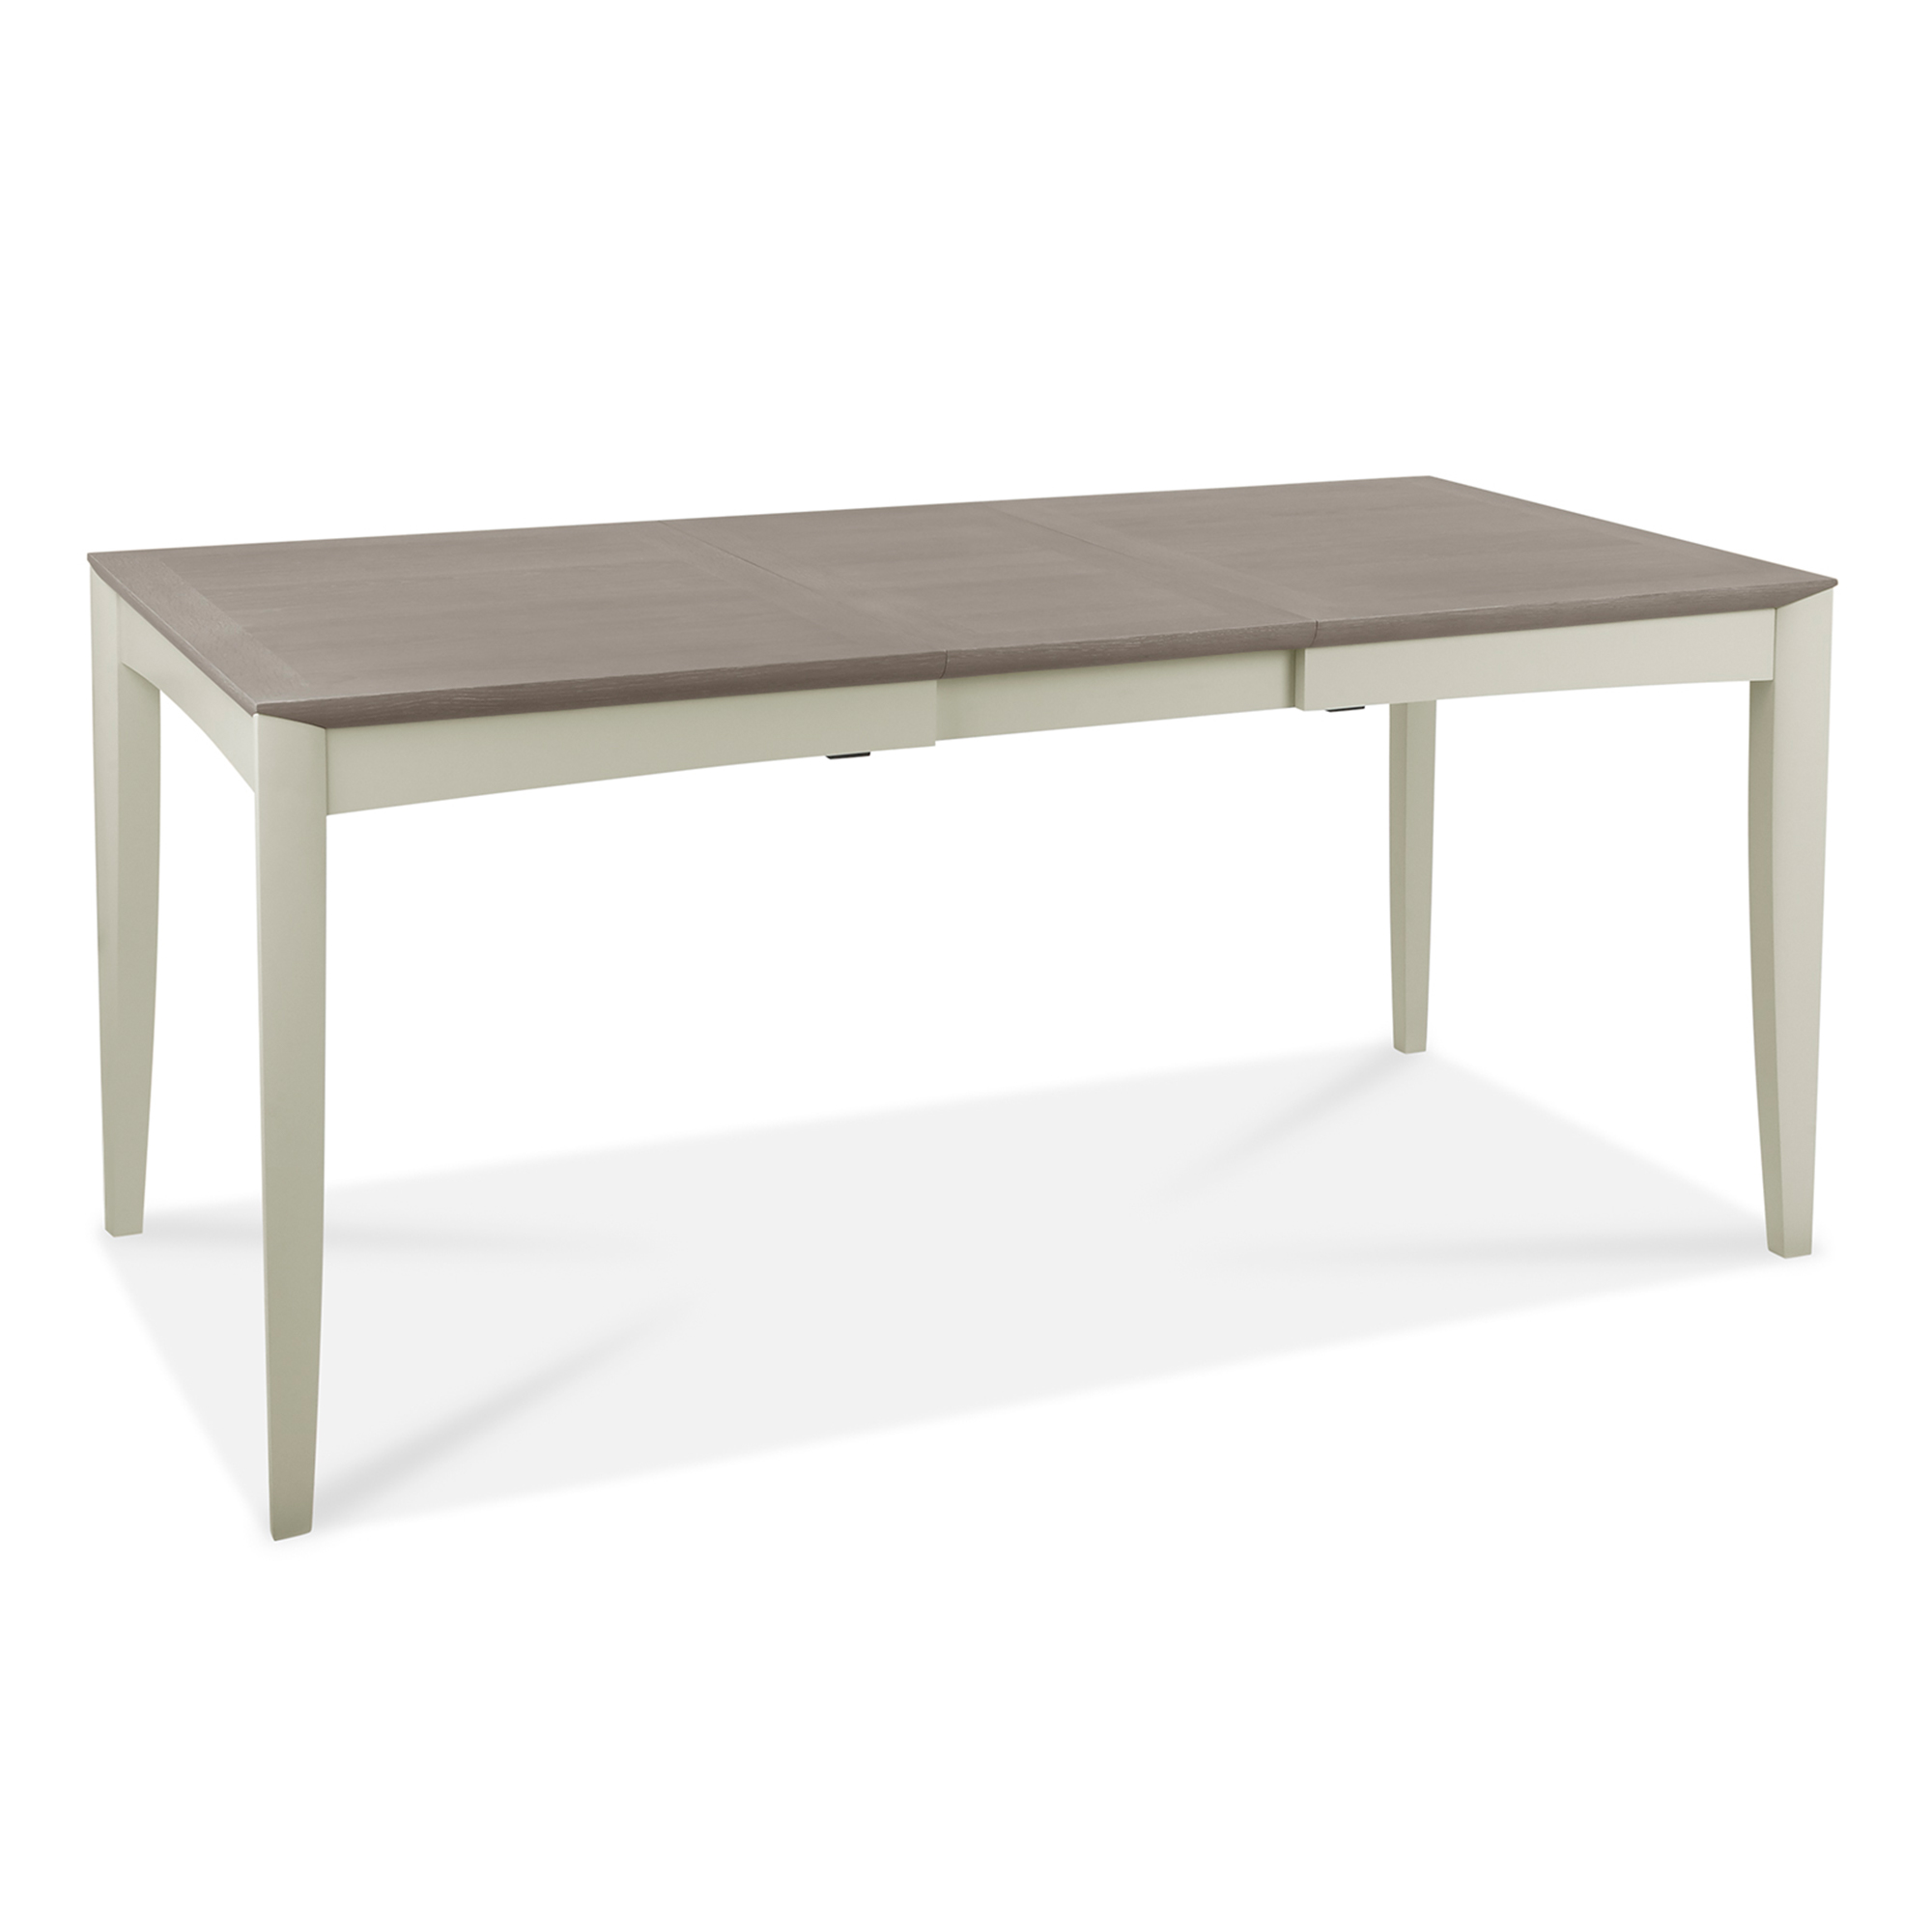 Calcot Grey - 4-6 Extension Table